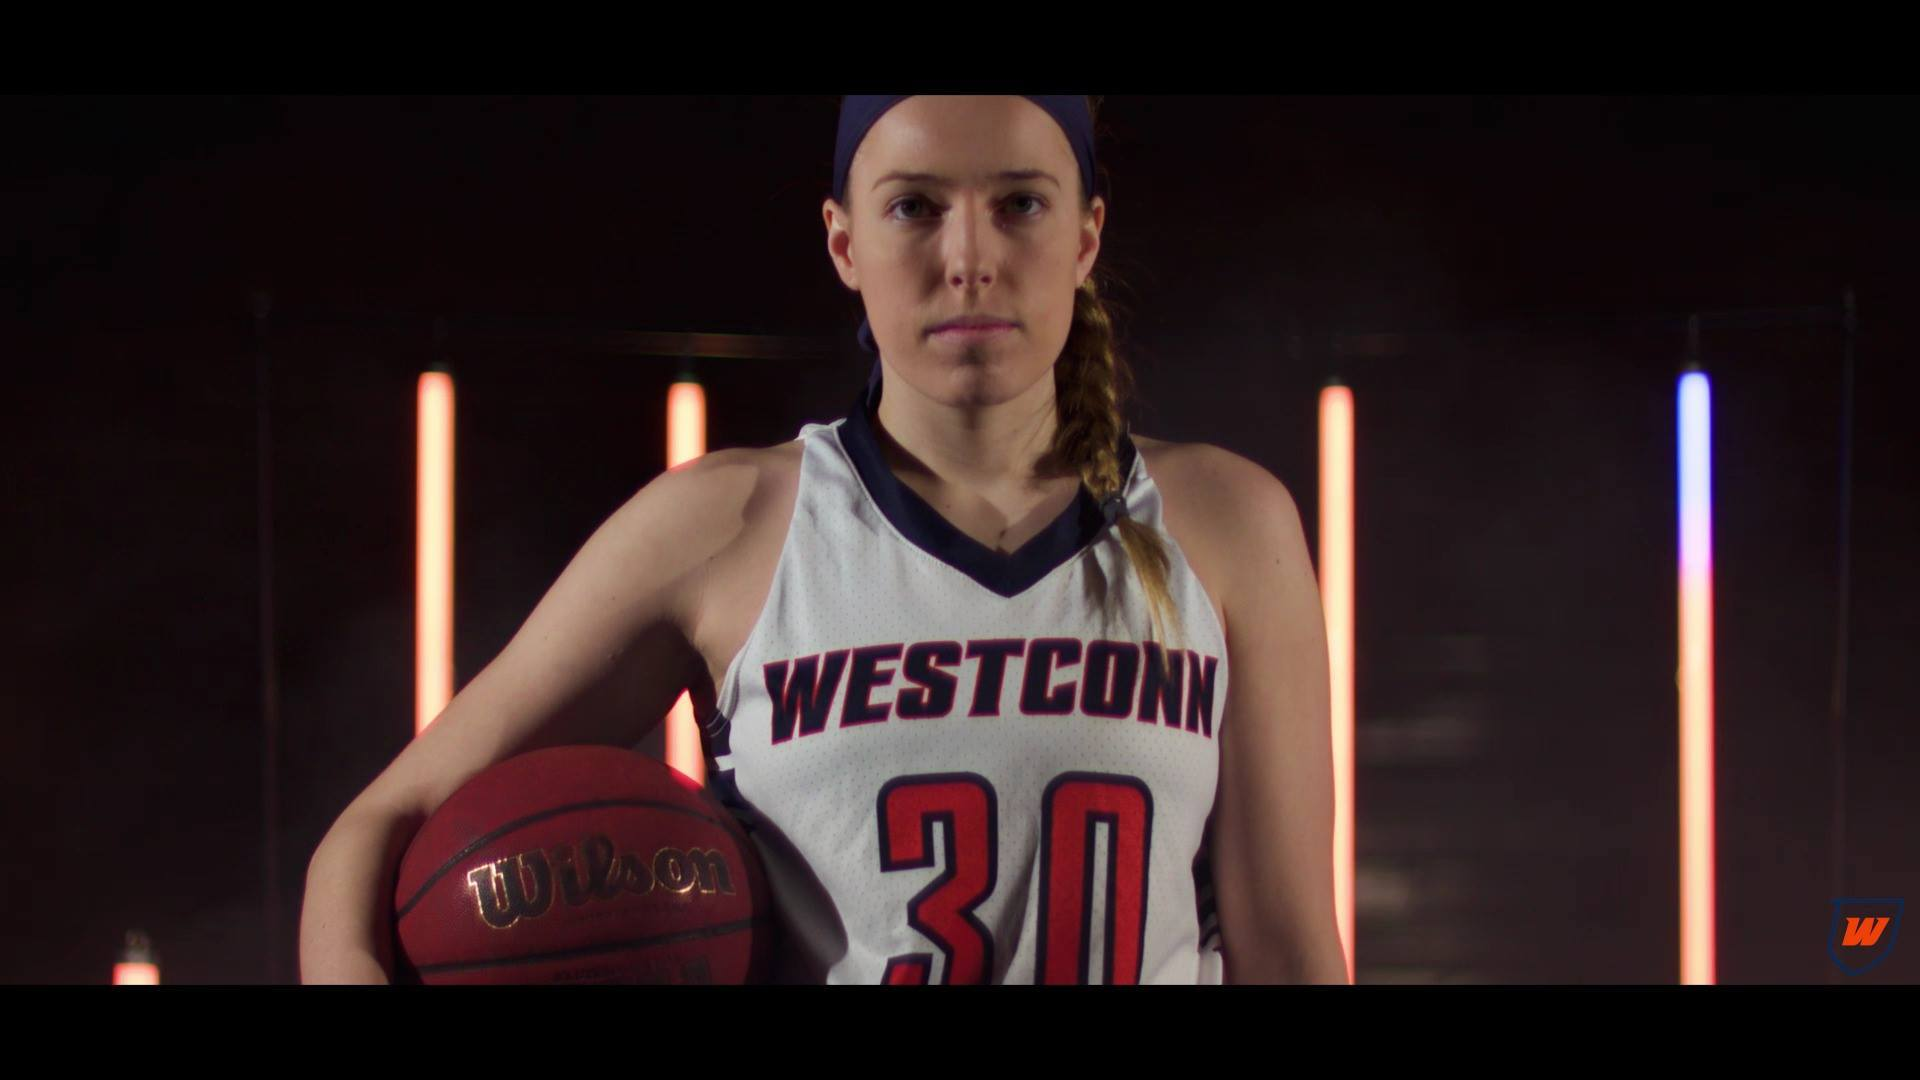 WestConn Men's & Women's Basketball 2019